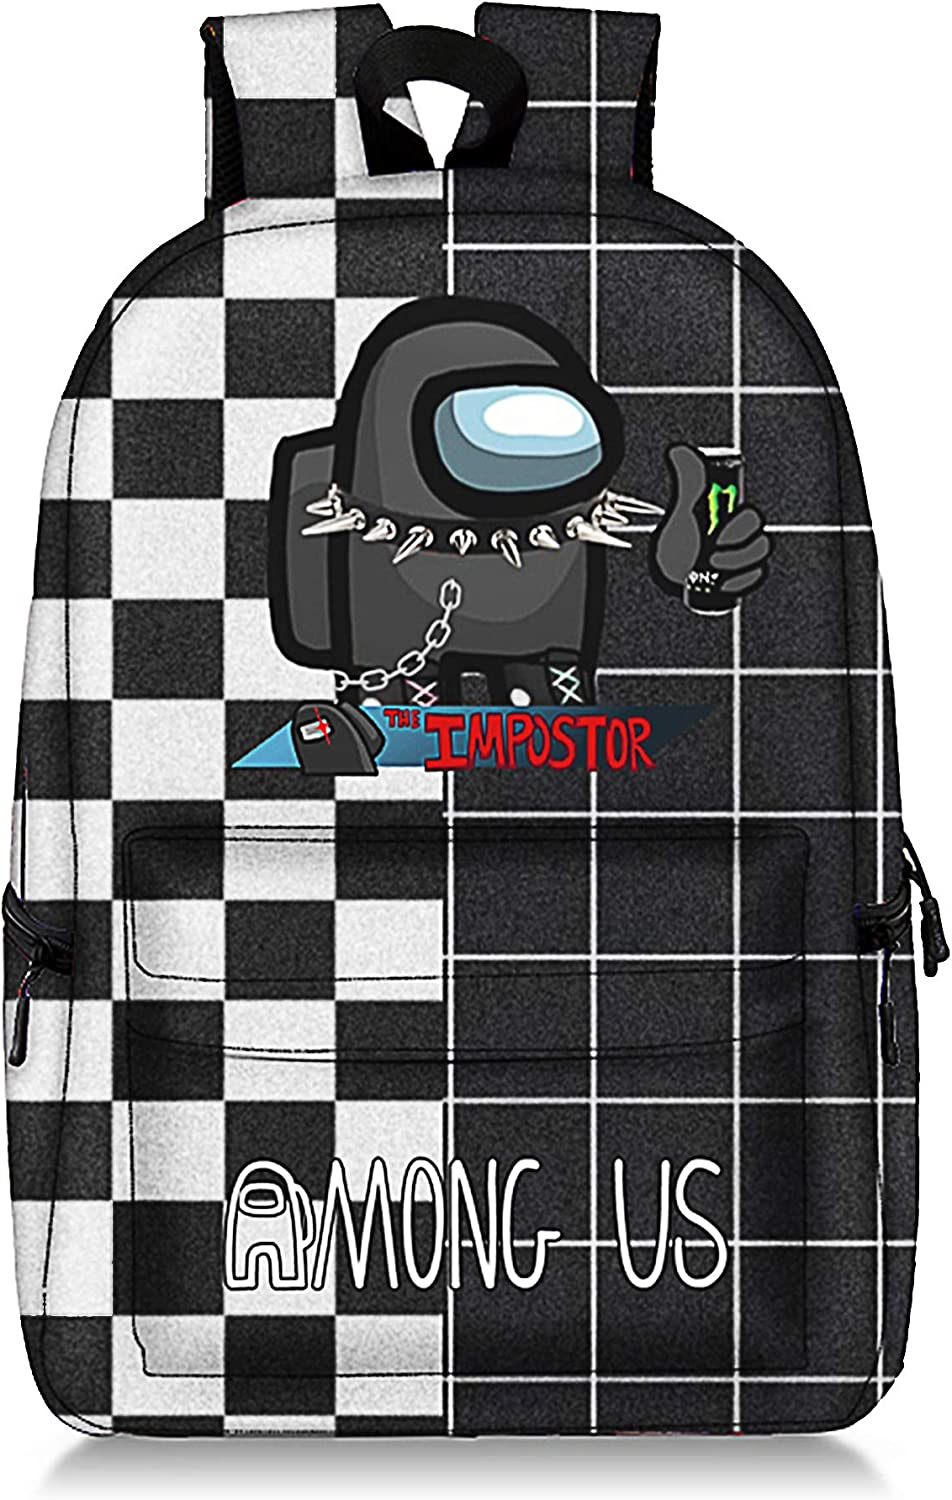 Among-Us Game Backpack Impostor Crewmate School Bag For Kids 18inch